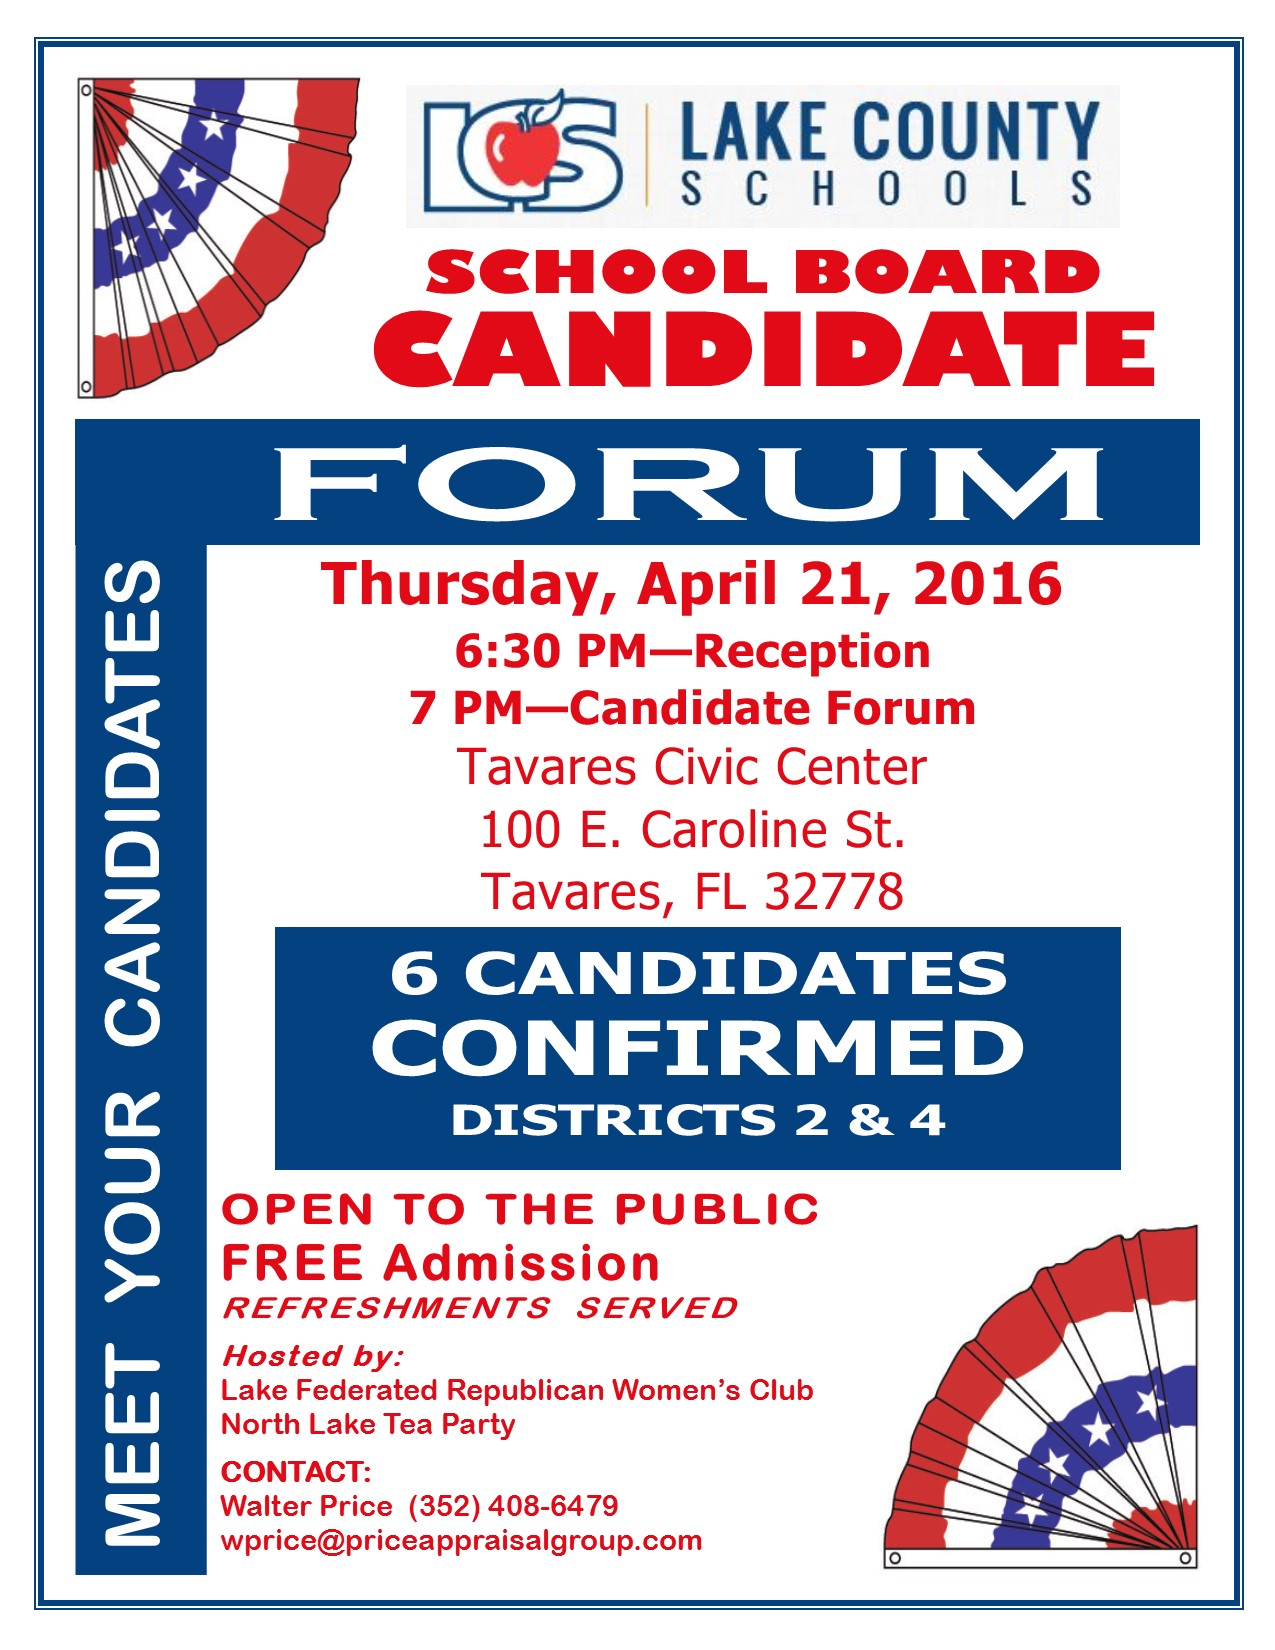 LC_Candidate_Forum_School_Board_20160421.jpg